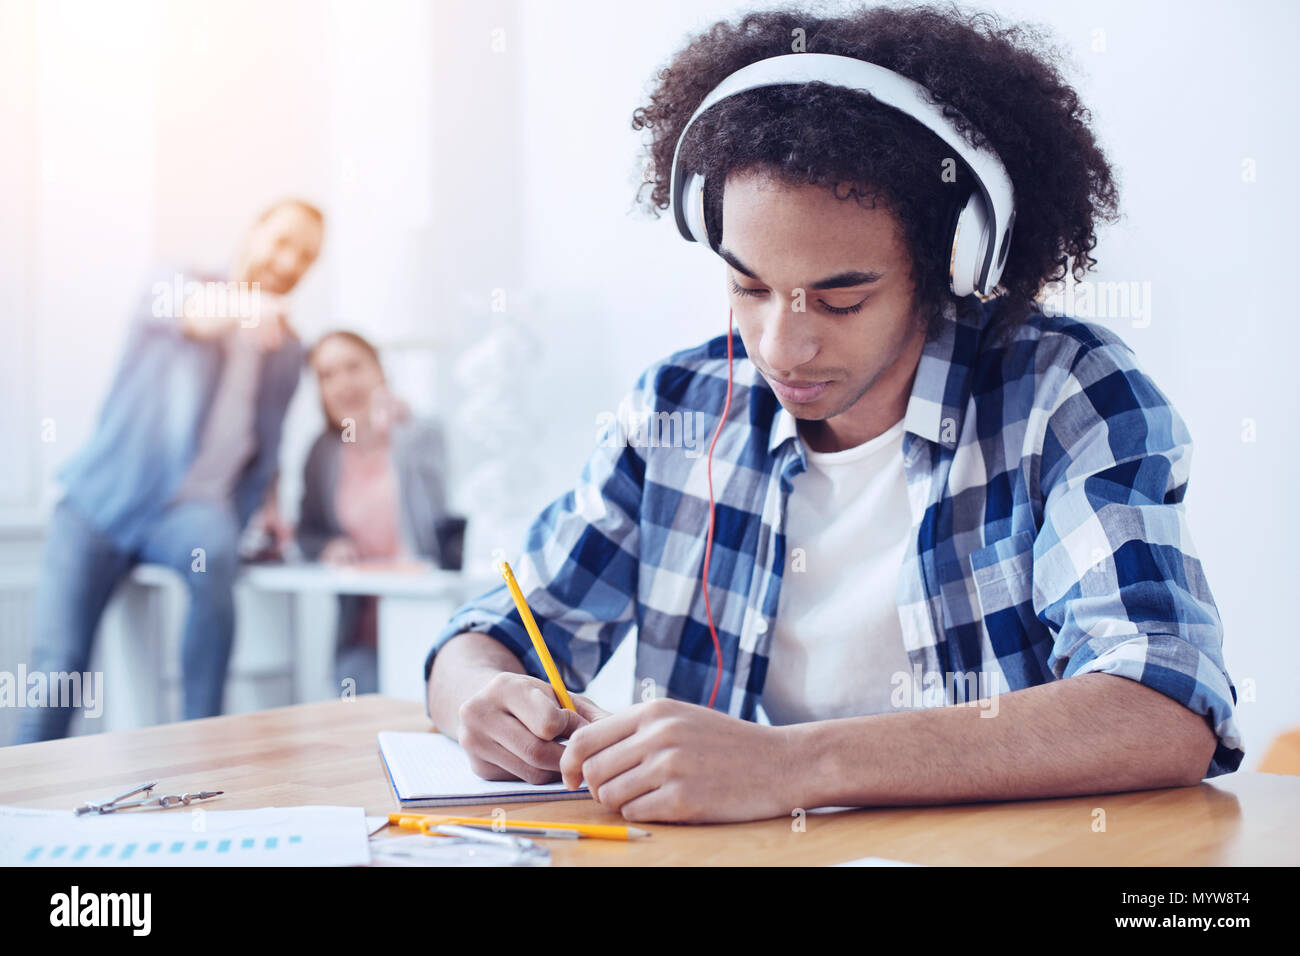 Concentrated foreign male person having headphones - Stock Image